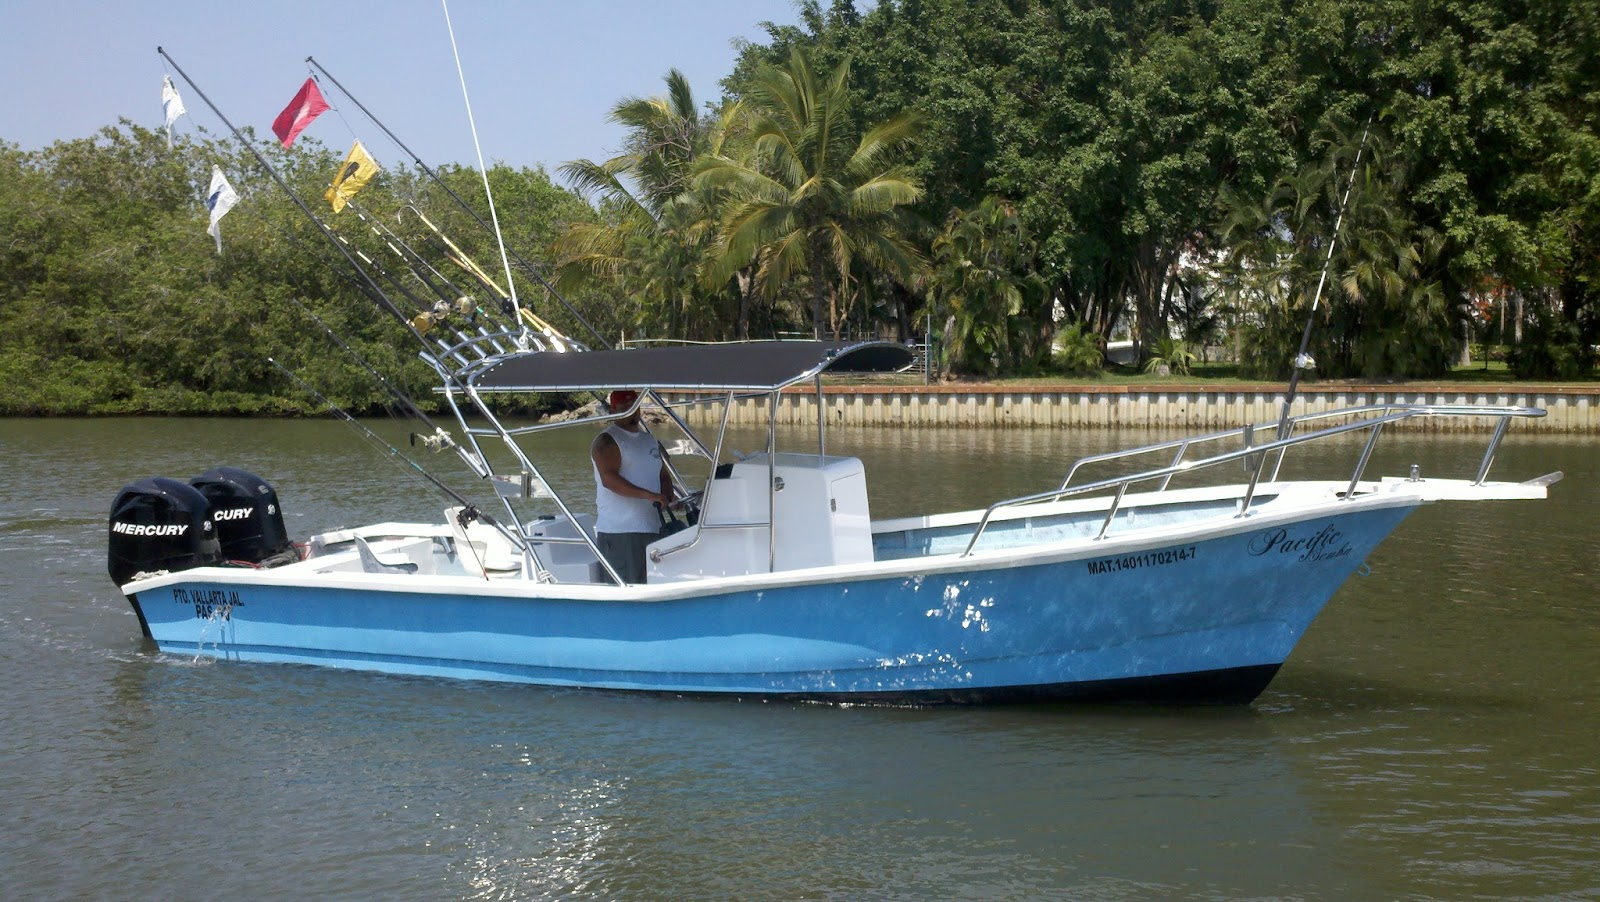 Pv sportfishing 29ft super panga for up to 4 people for Puerto vallarta fishing